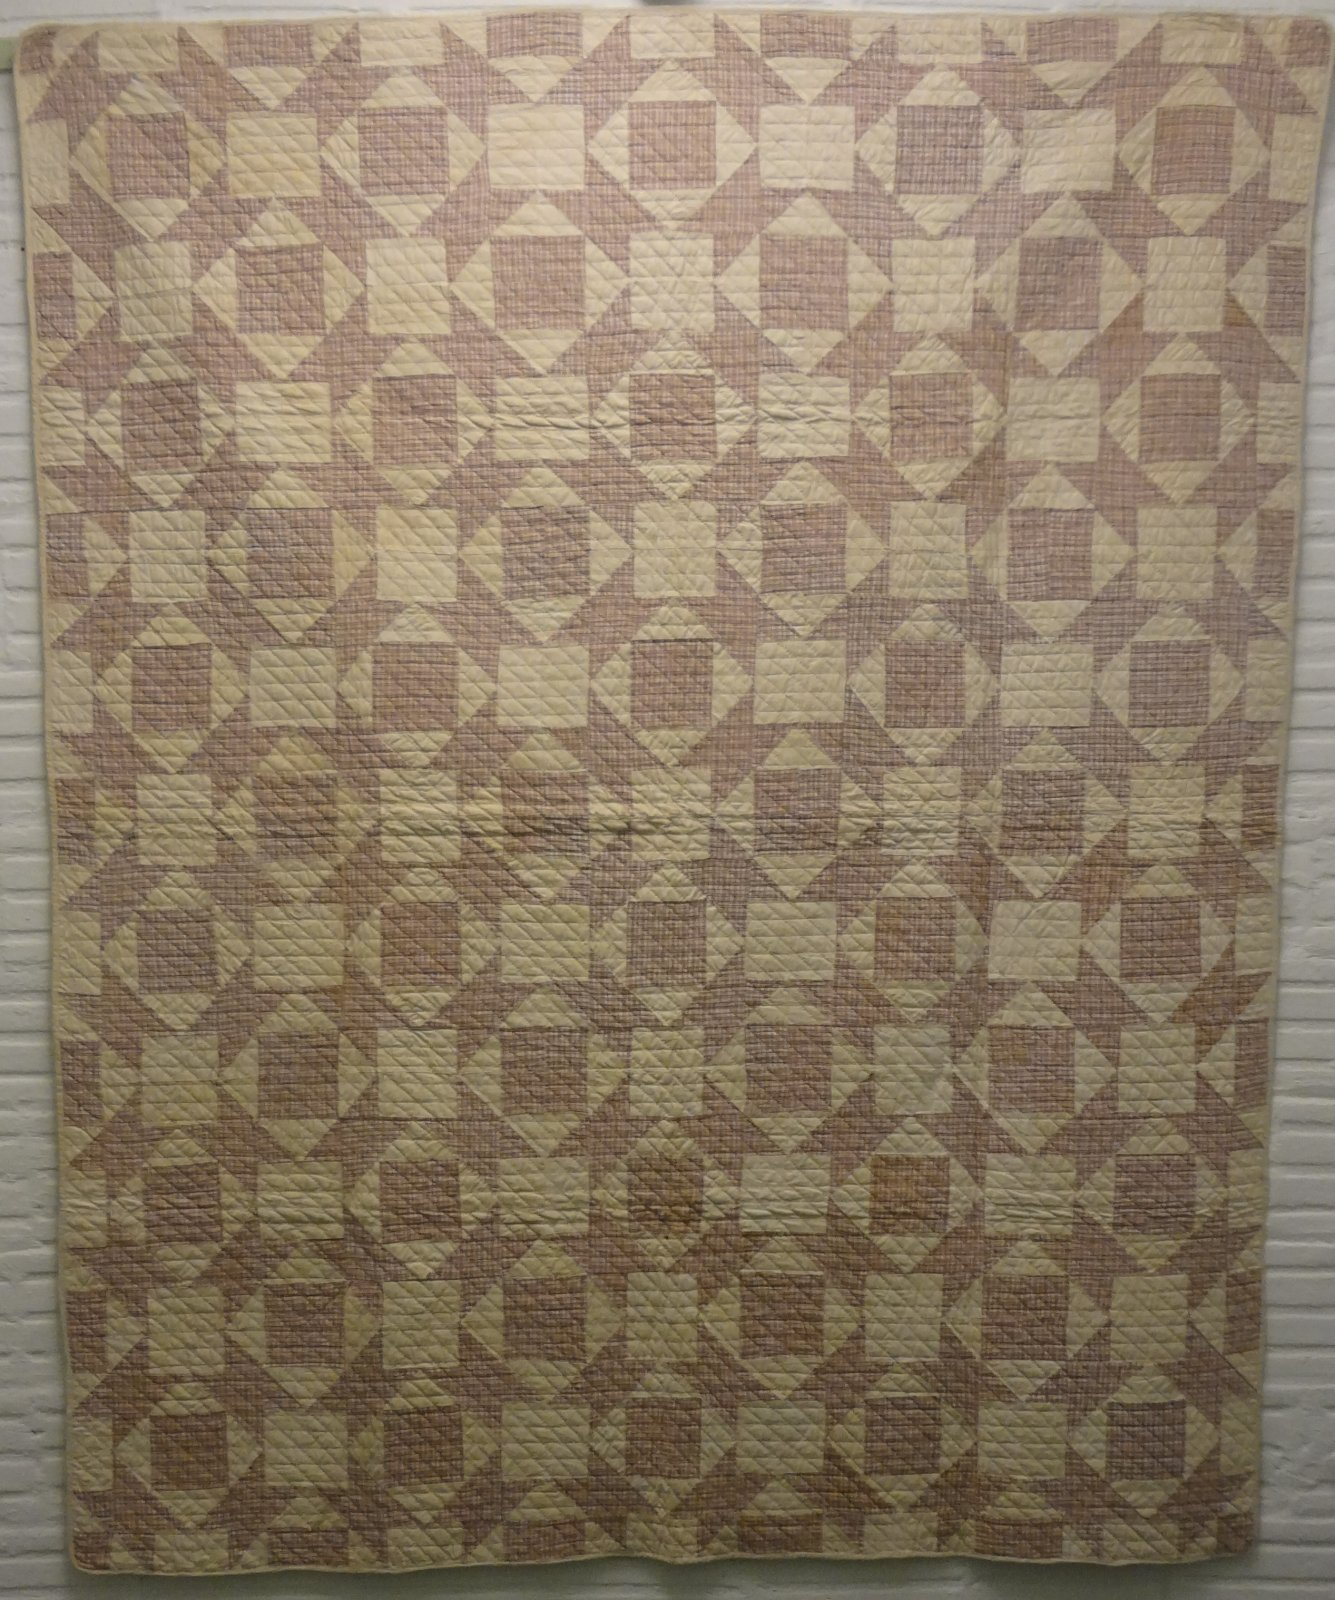 BOTCH HANDLE or ANVIL LAVENDER PLAID ANTIQUE QUILT